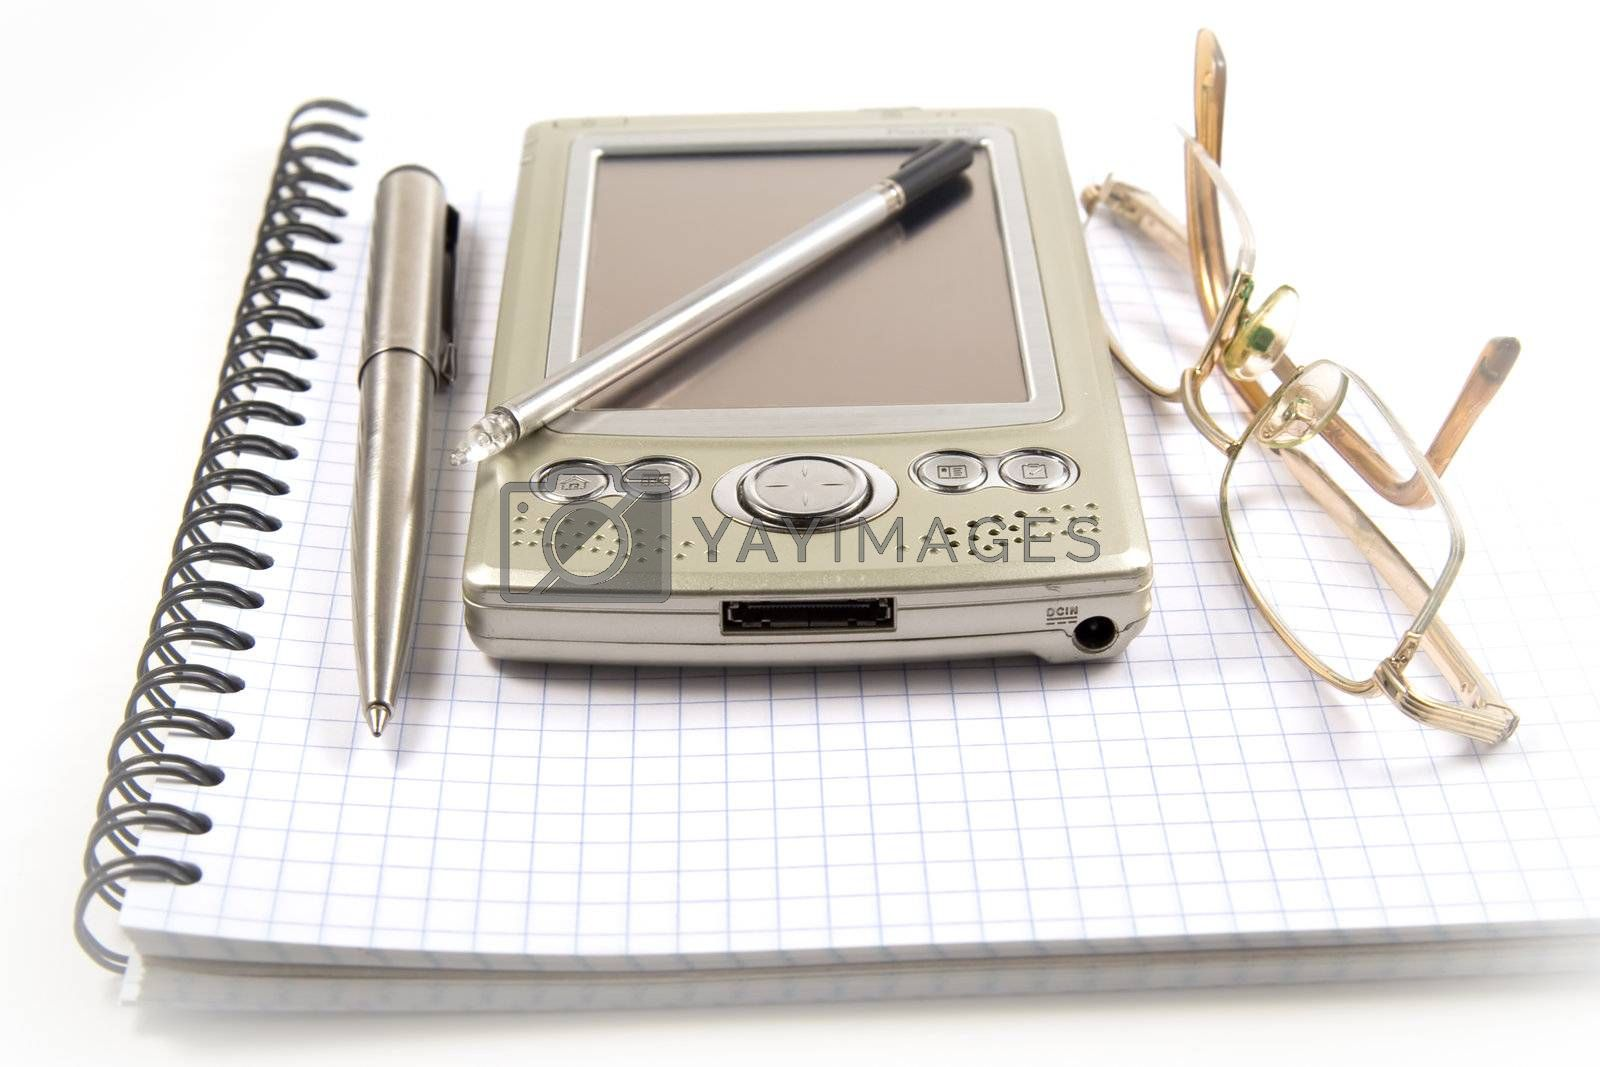 Vignetting image of pen, PDA  and eyeglasses on spiral notebook by serpl